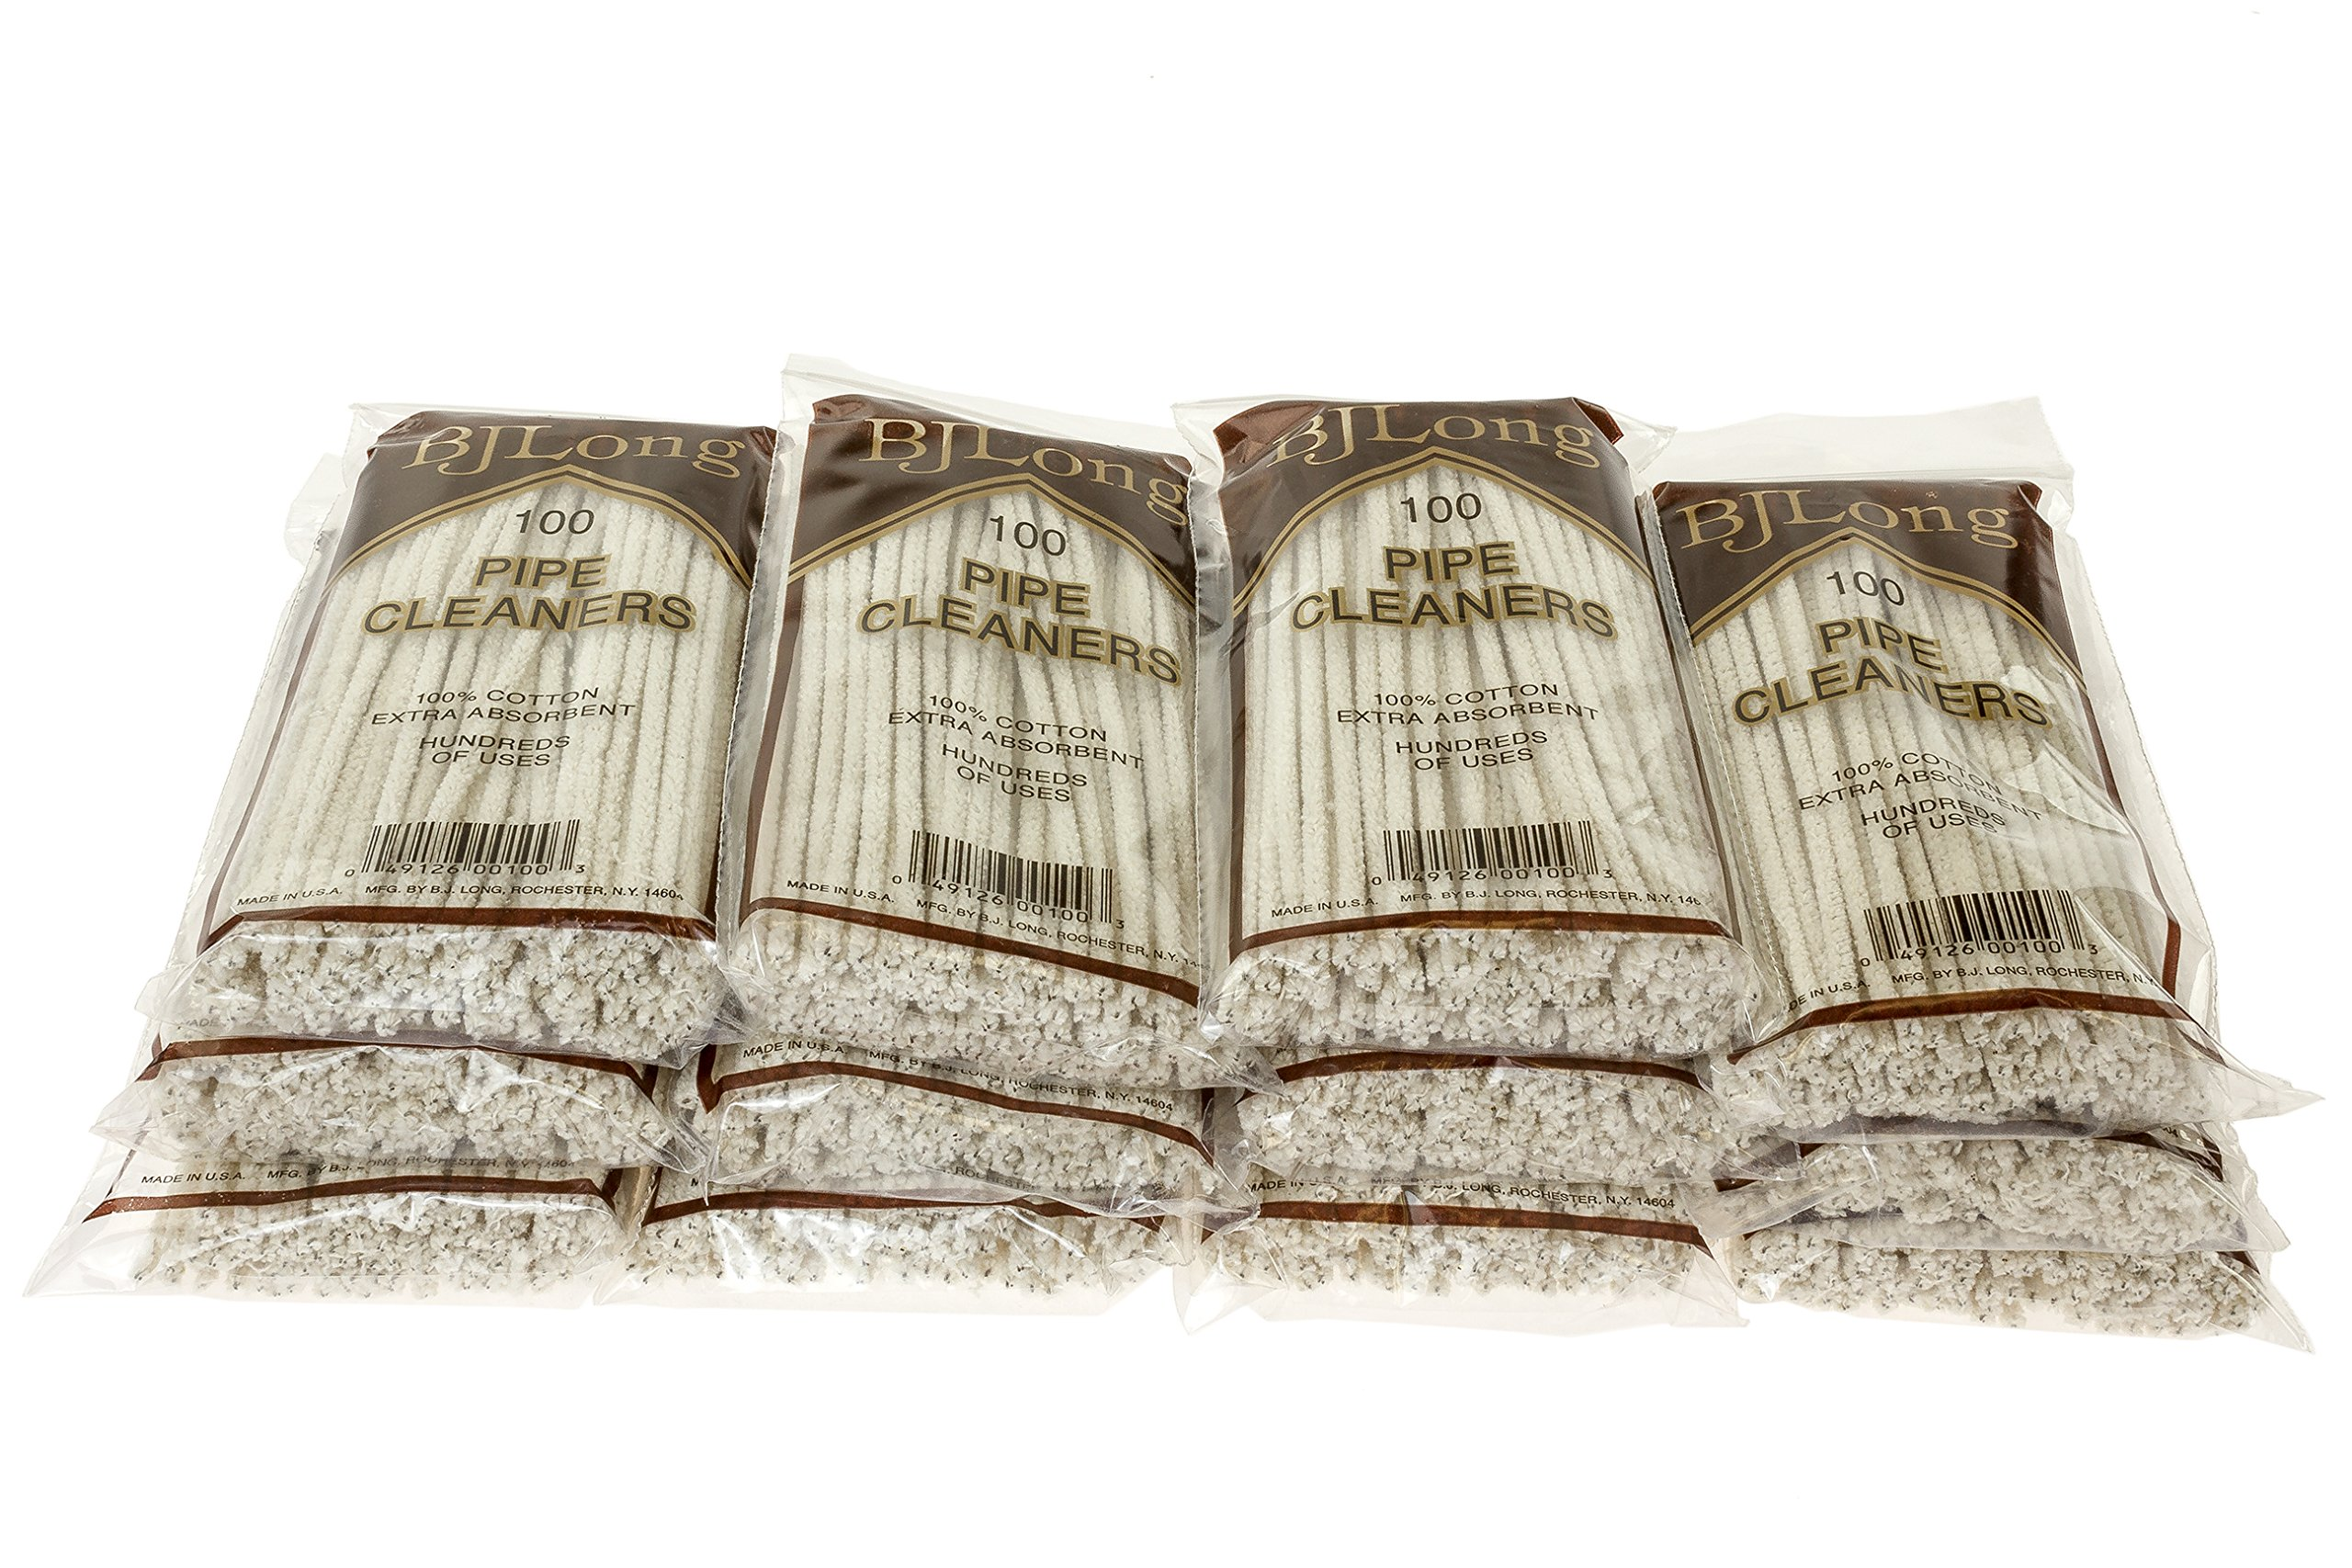 BJ Long Pipe Cleaners 100 Count - 12 Pack TP-1424 by BJ Long